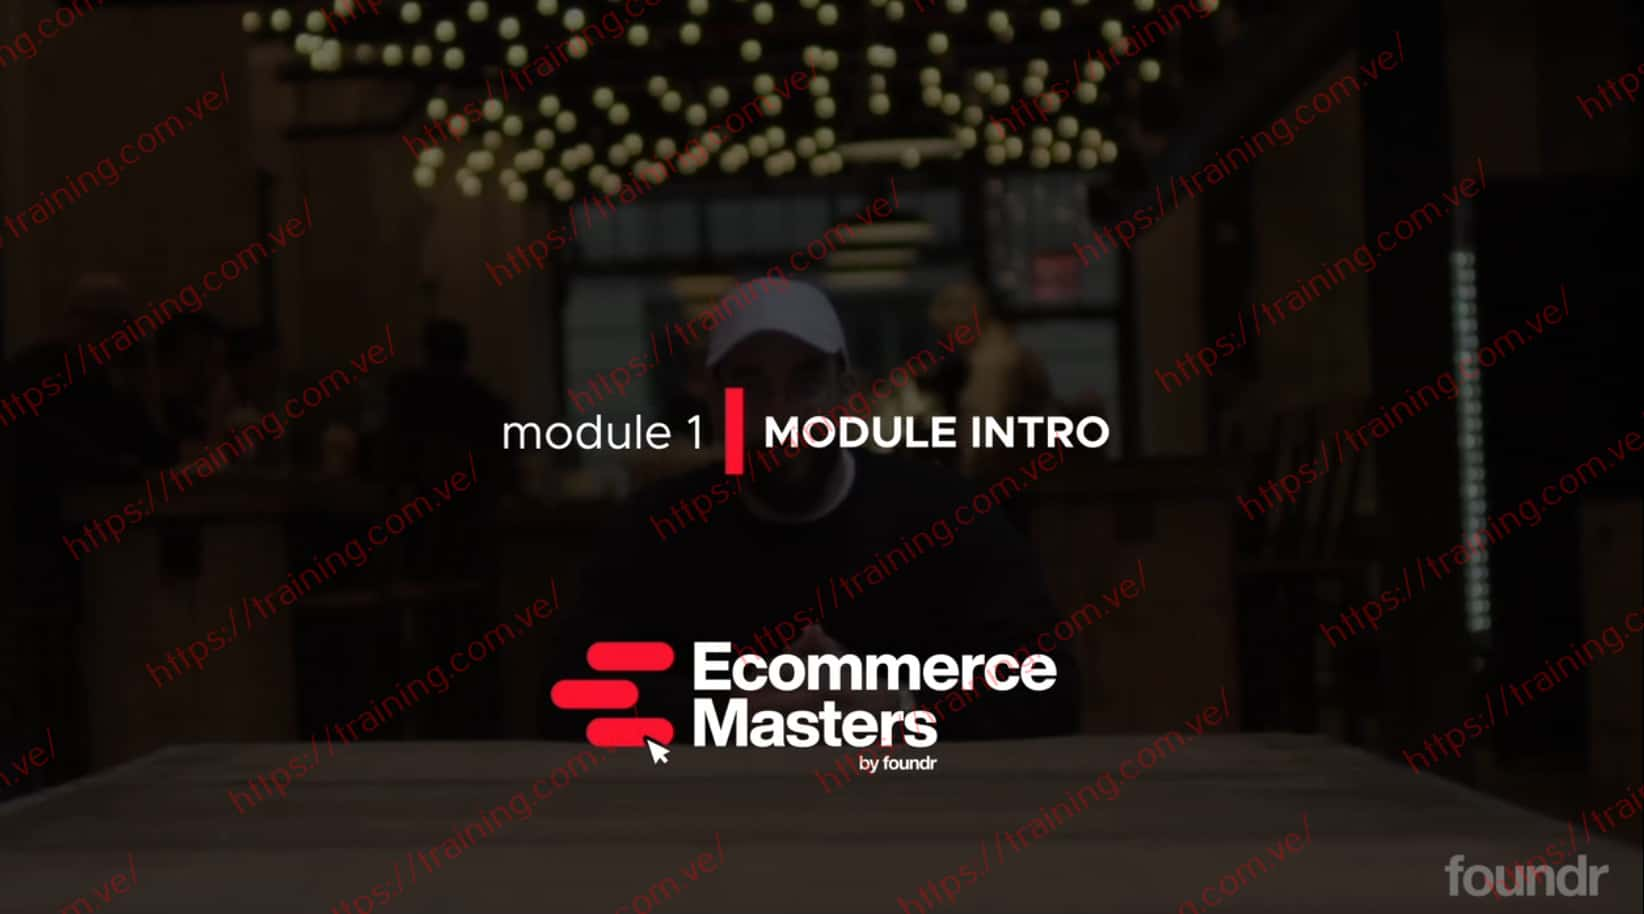 Ecommerce Masters by Foundr get